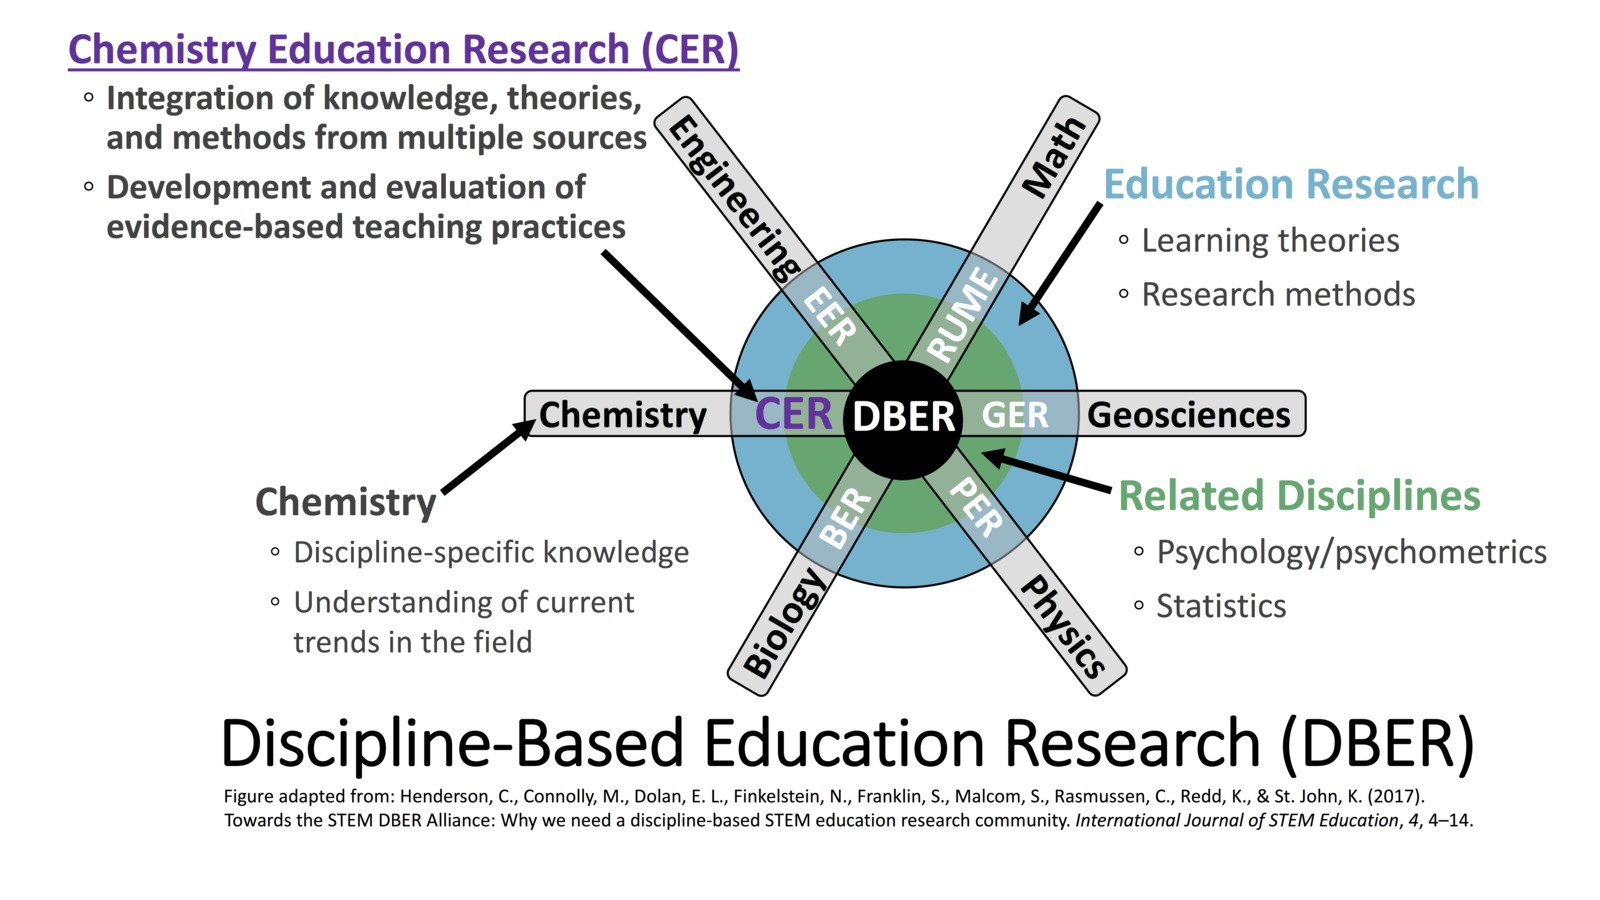 Discipline-Based Education Research diagram